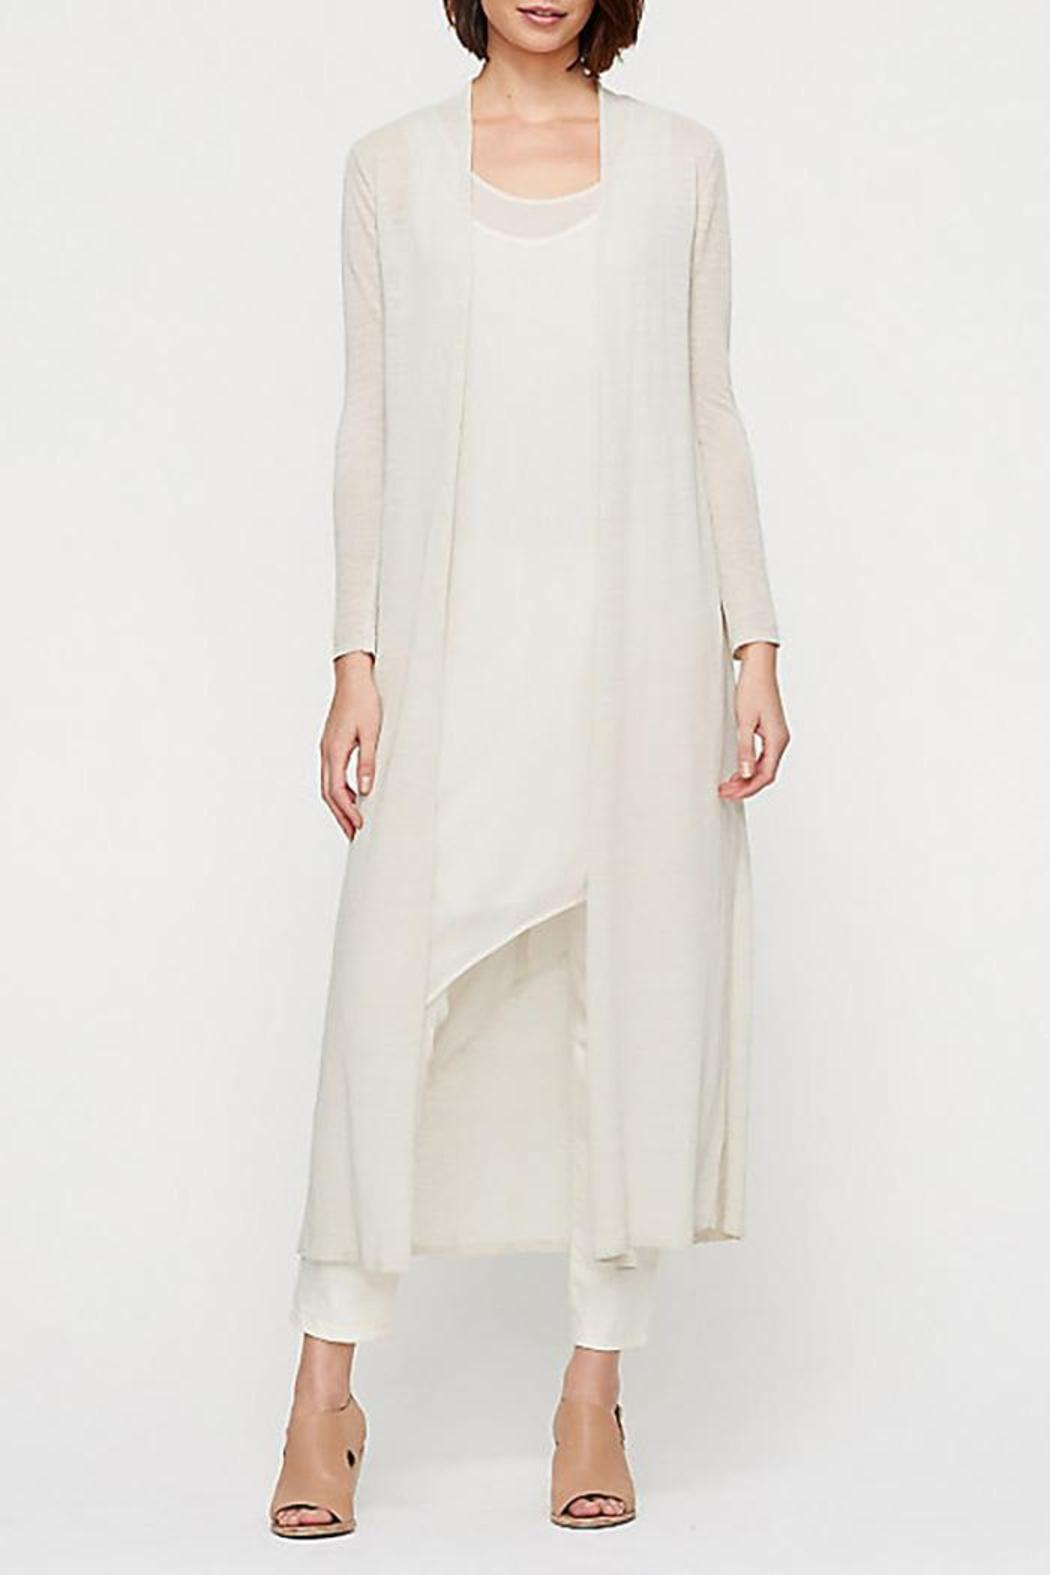 e1616c9d28 Eileen Fisher Bone Maxi Cardigan from District of Columbia by The ...